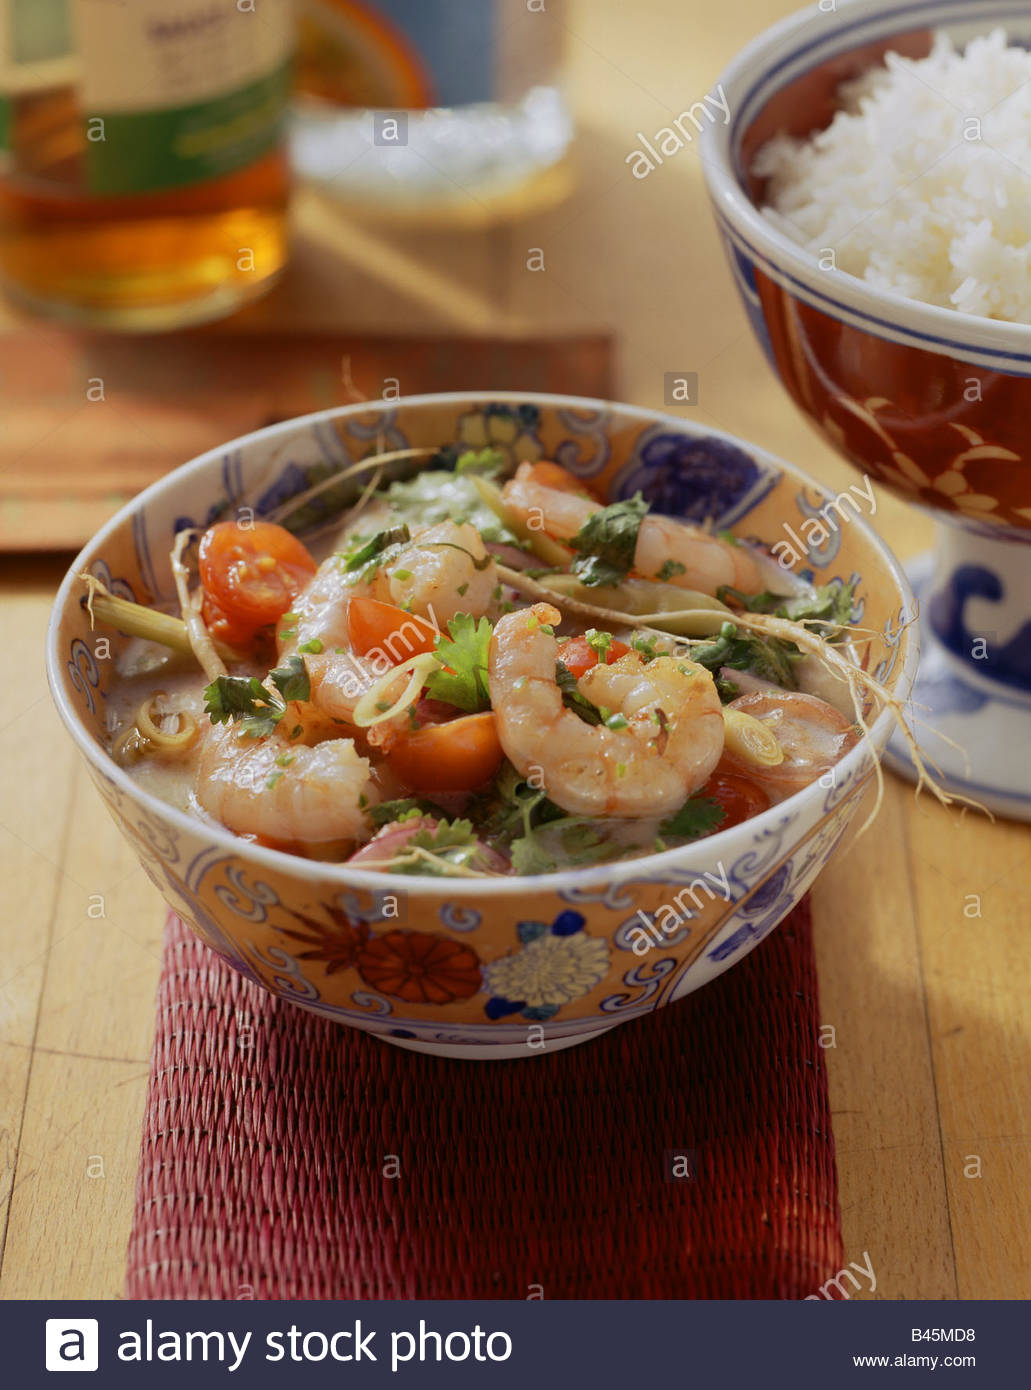 Shrimps In Spicy Coconut Milk Sauce  A Bowl Of Fragrant Rice